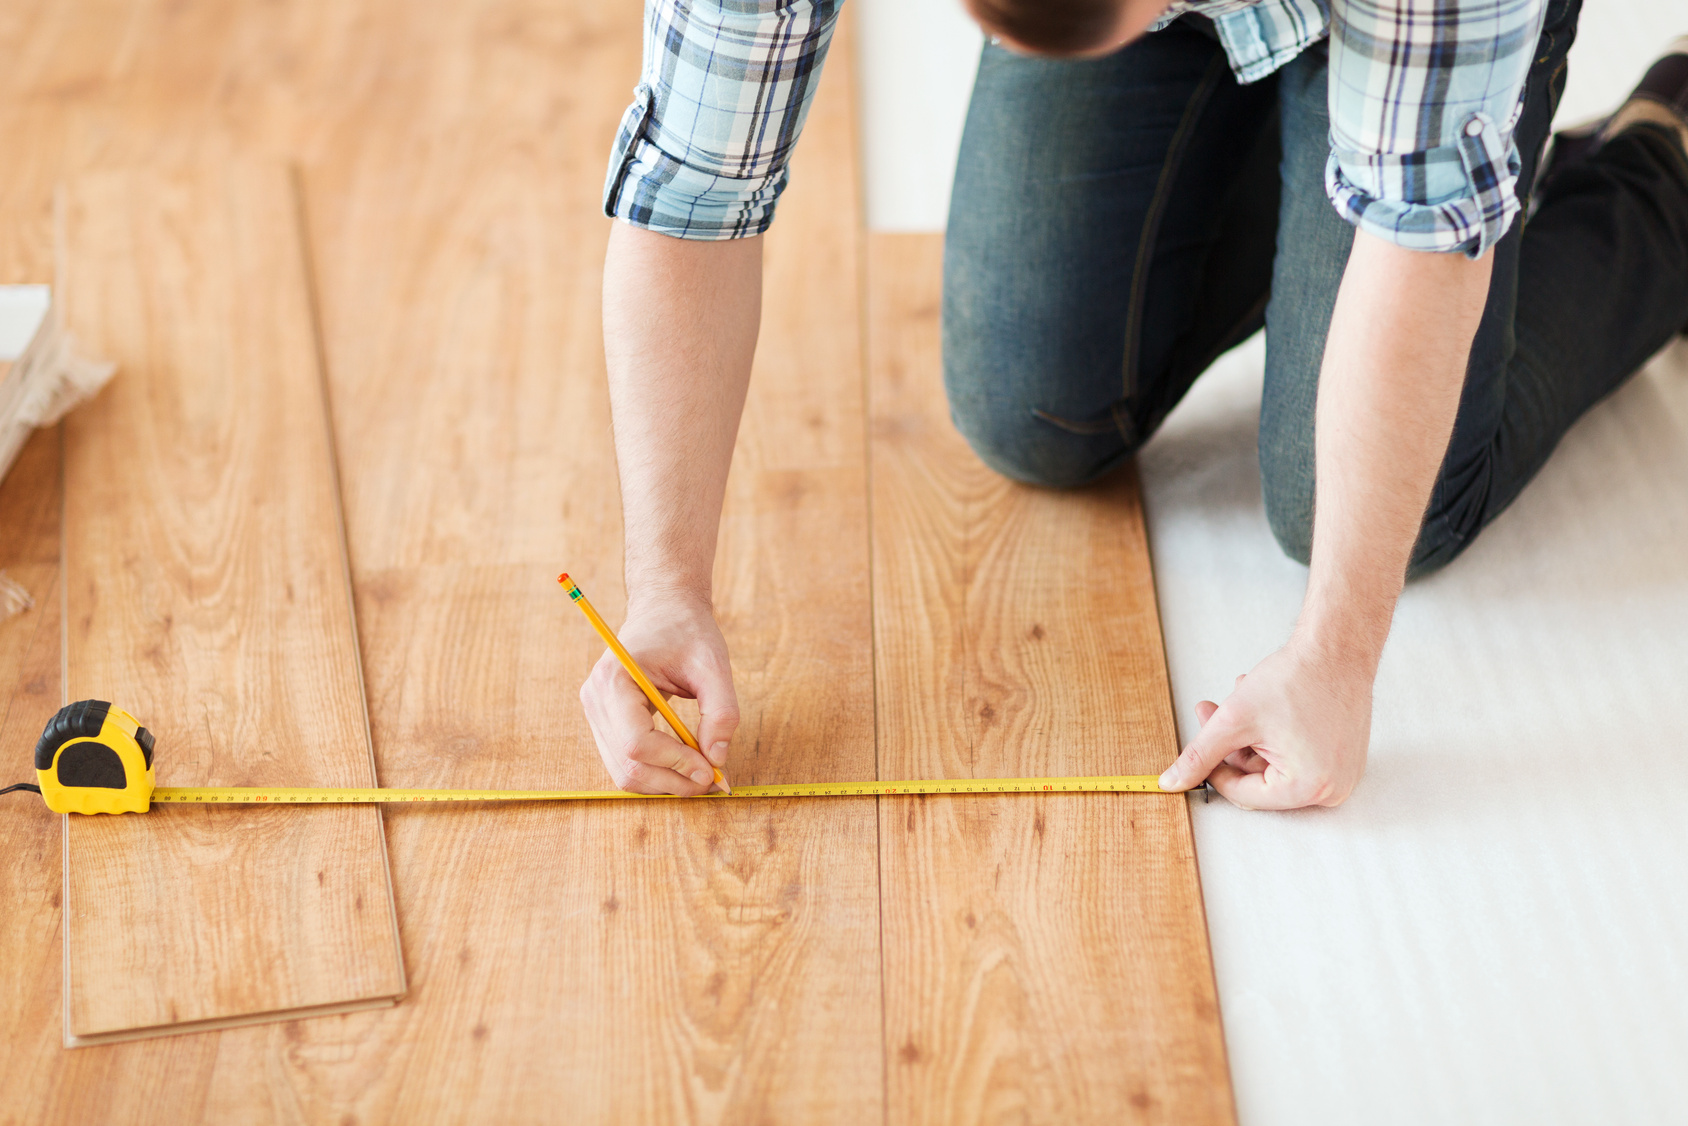 How To Measure The Moisture Content Of Wood For Diy Projects